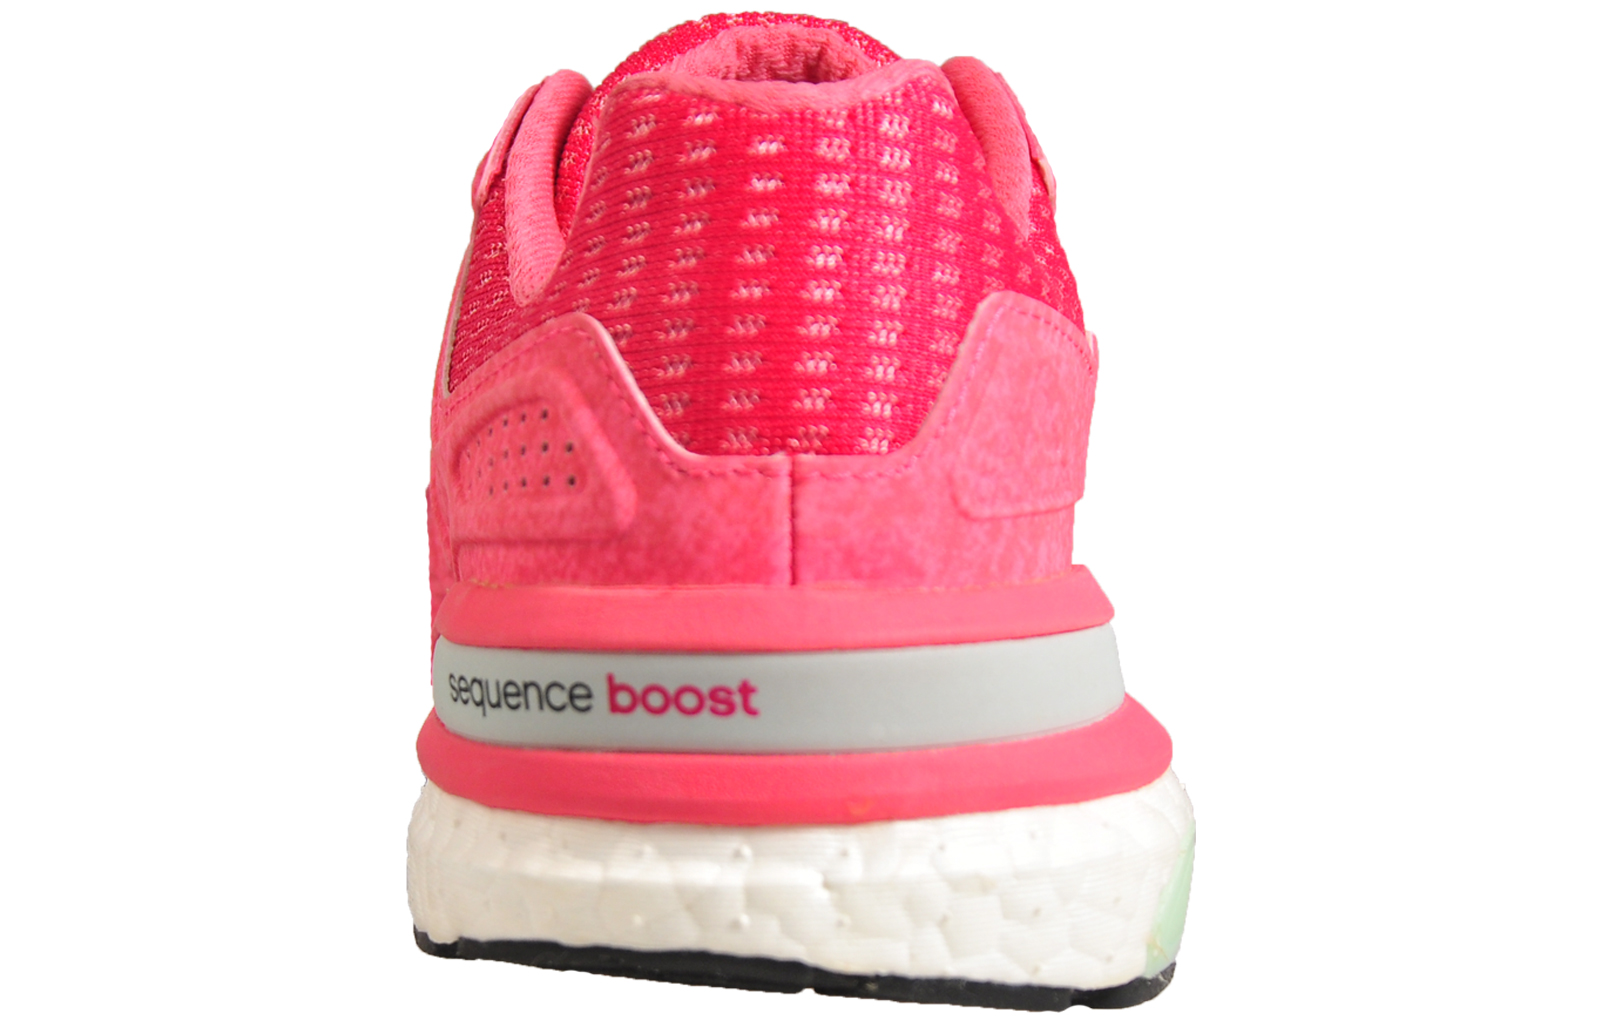 best website 845b9 0c193 Adidas Supernova Sequence Boost 8 Women s Running Shoes Fitness Gym Trainers